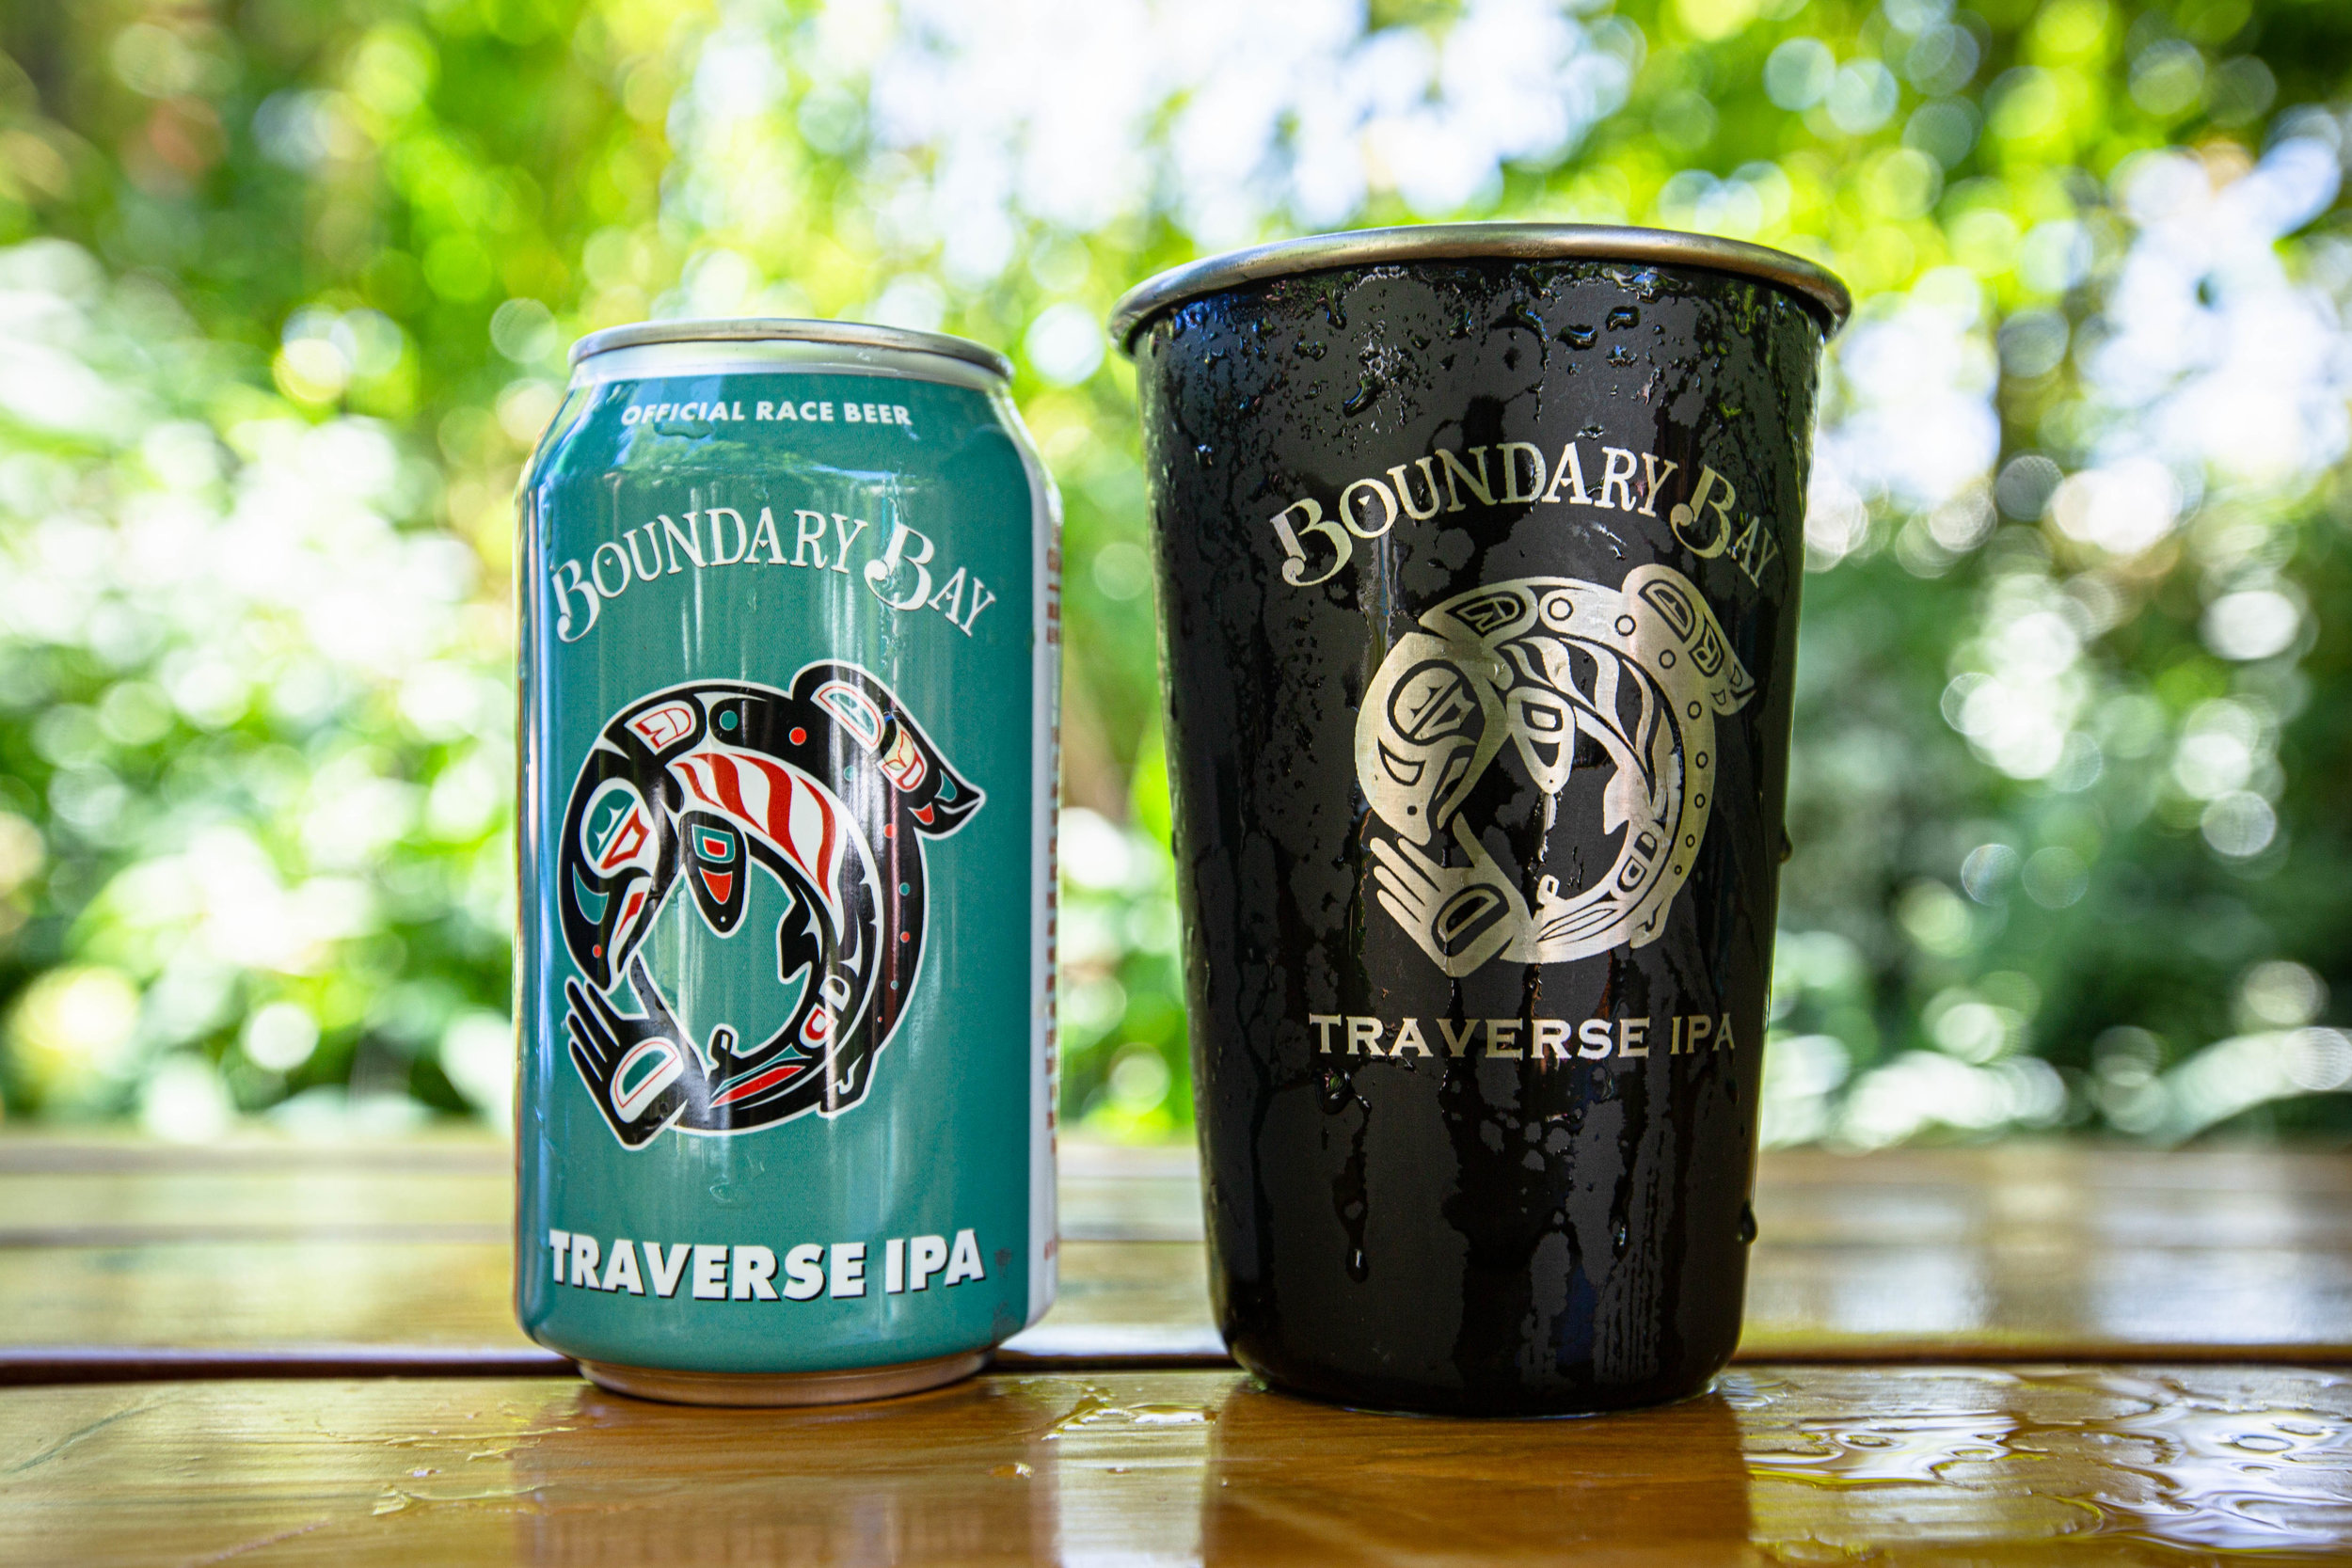 Traverse IPA is a bright, hop-forward IPA brewed to celebrate the annual Bellingham Traverse. This IPA explodes with a bouquet of aromas and sprints to a moderately assertive bitter finish.